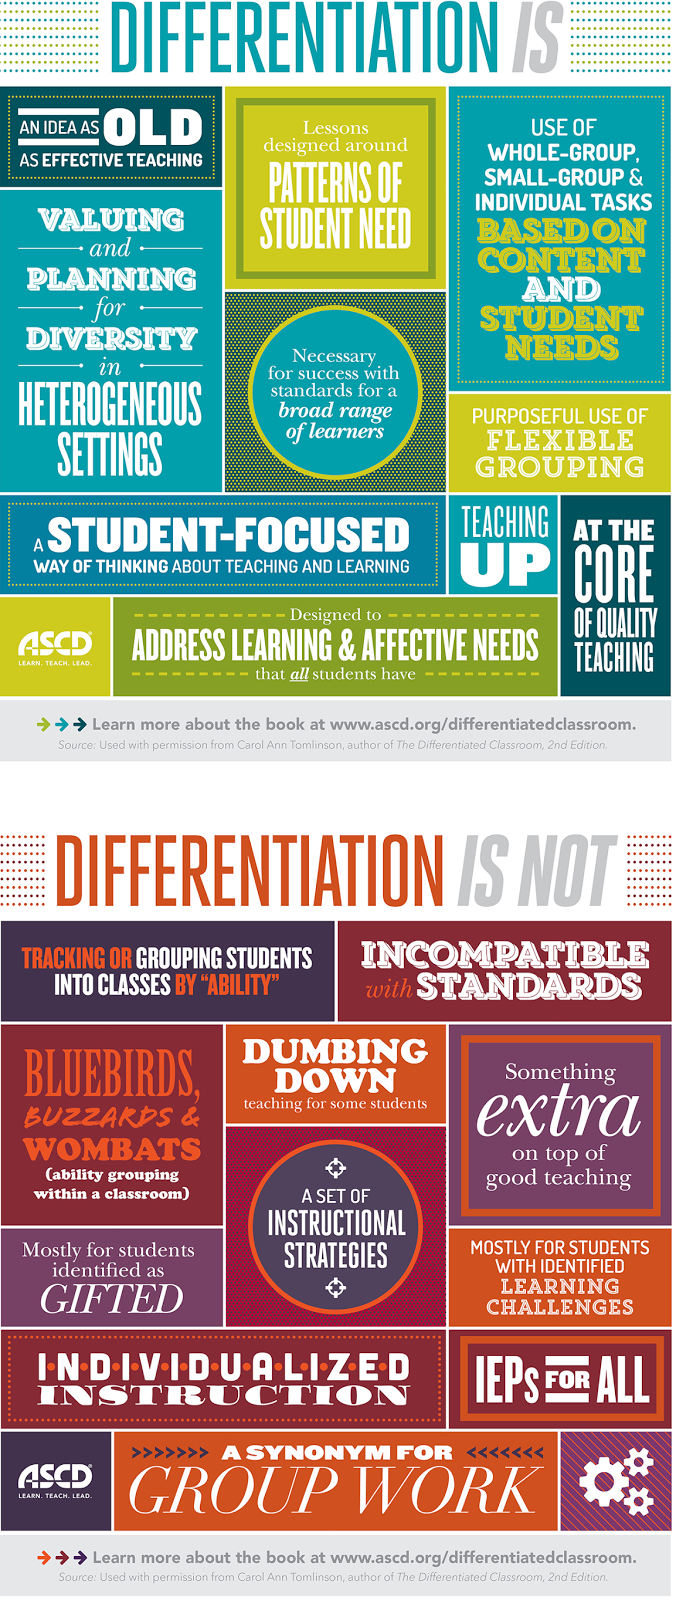 Infographic of what is and what is not differentiation